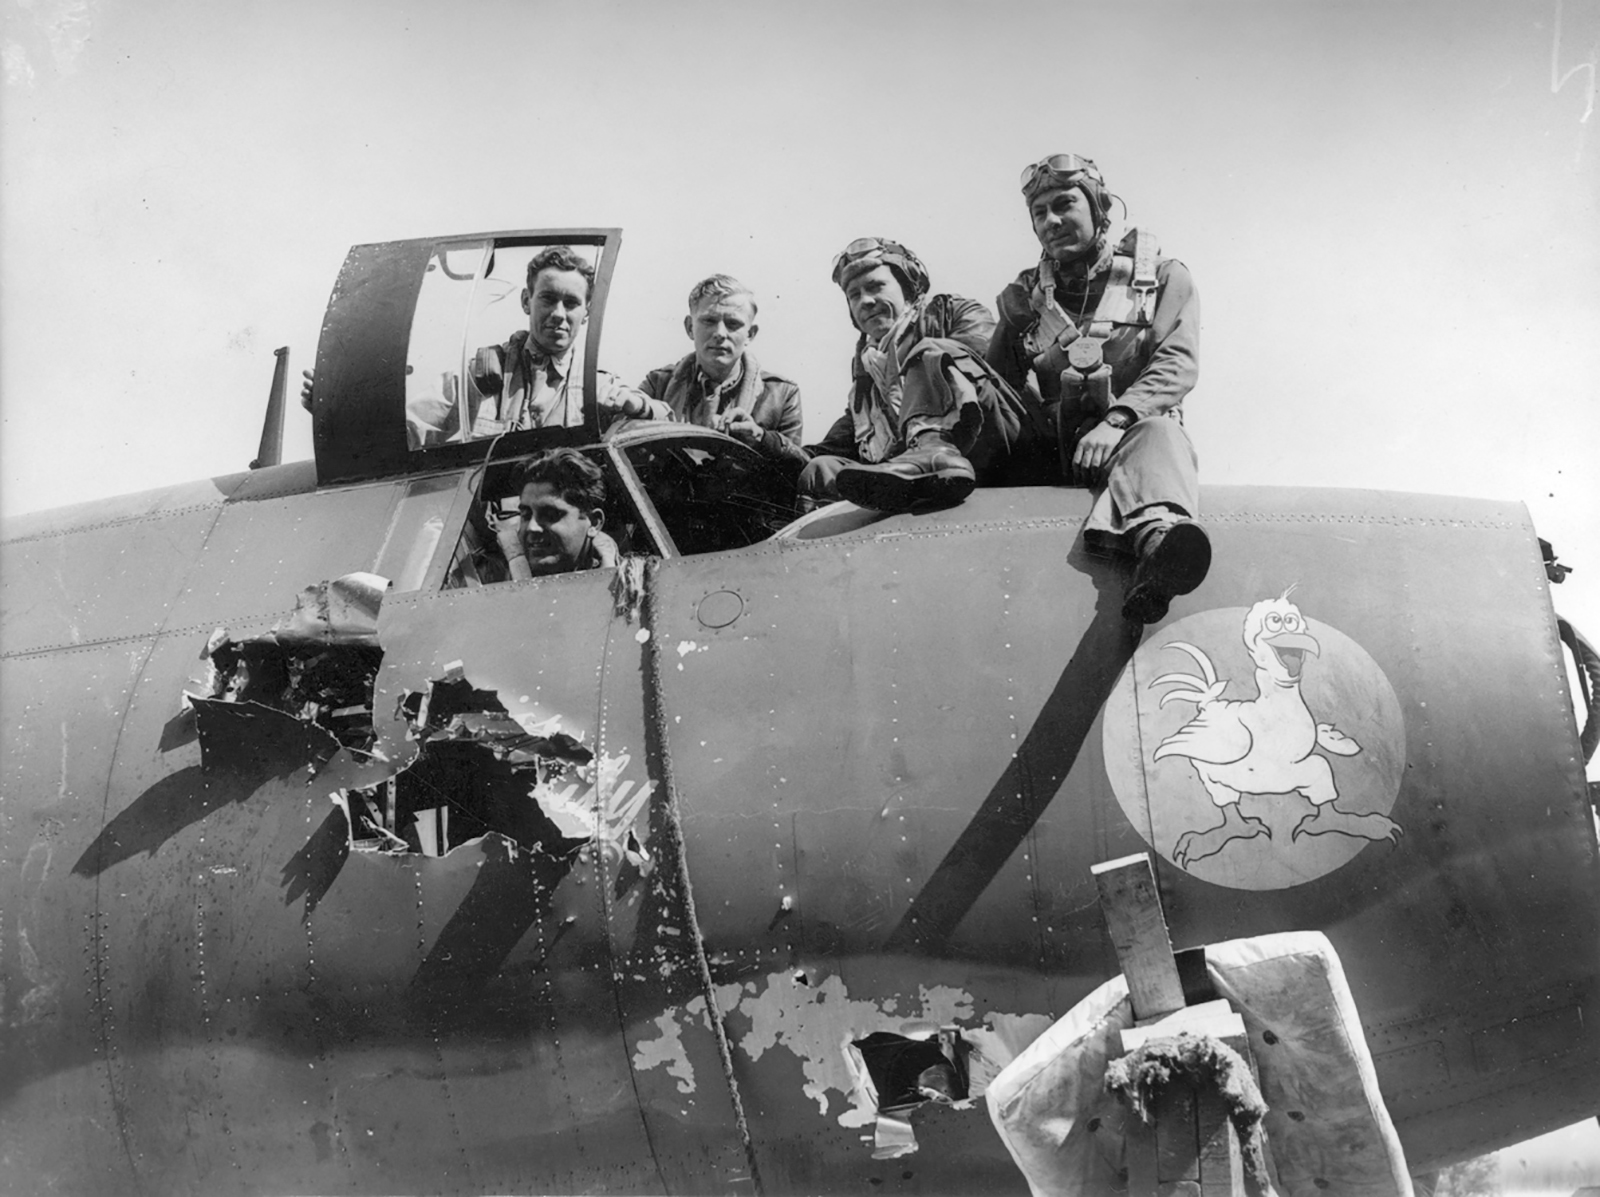 USAAF 41 34719 B 26C Marauder 323BG455BS YUA Miss Emily battle damage cockpit England 4 Aug 1943 04